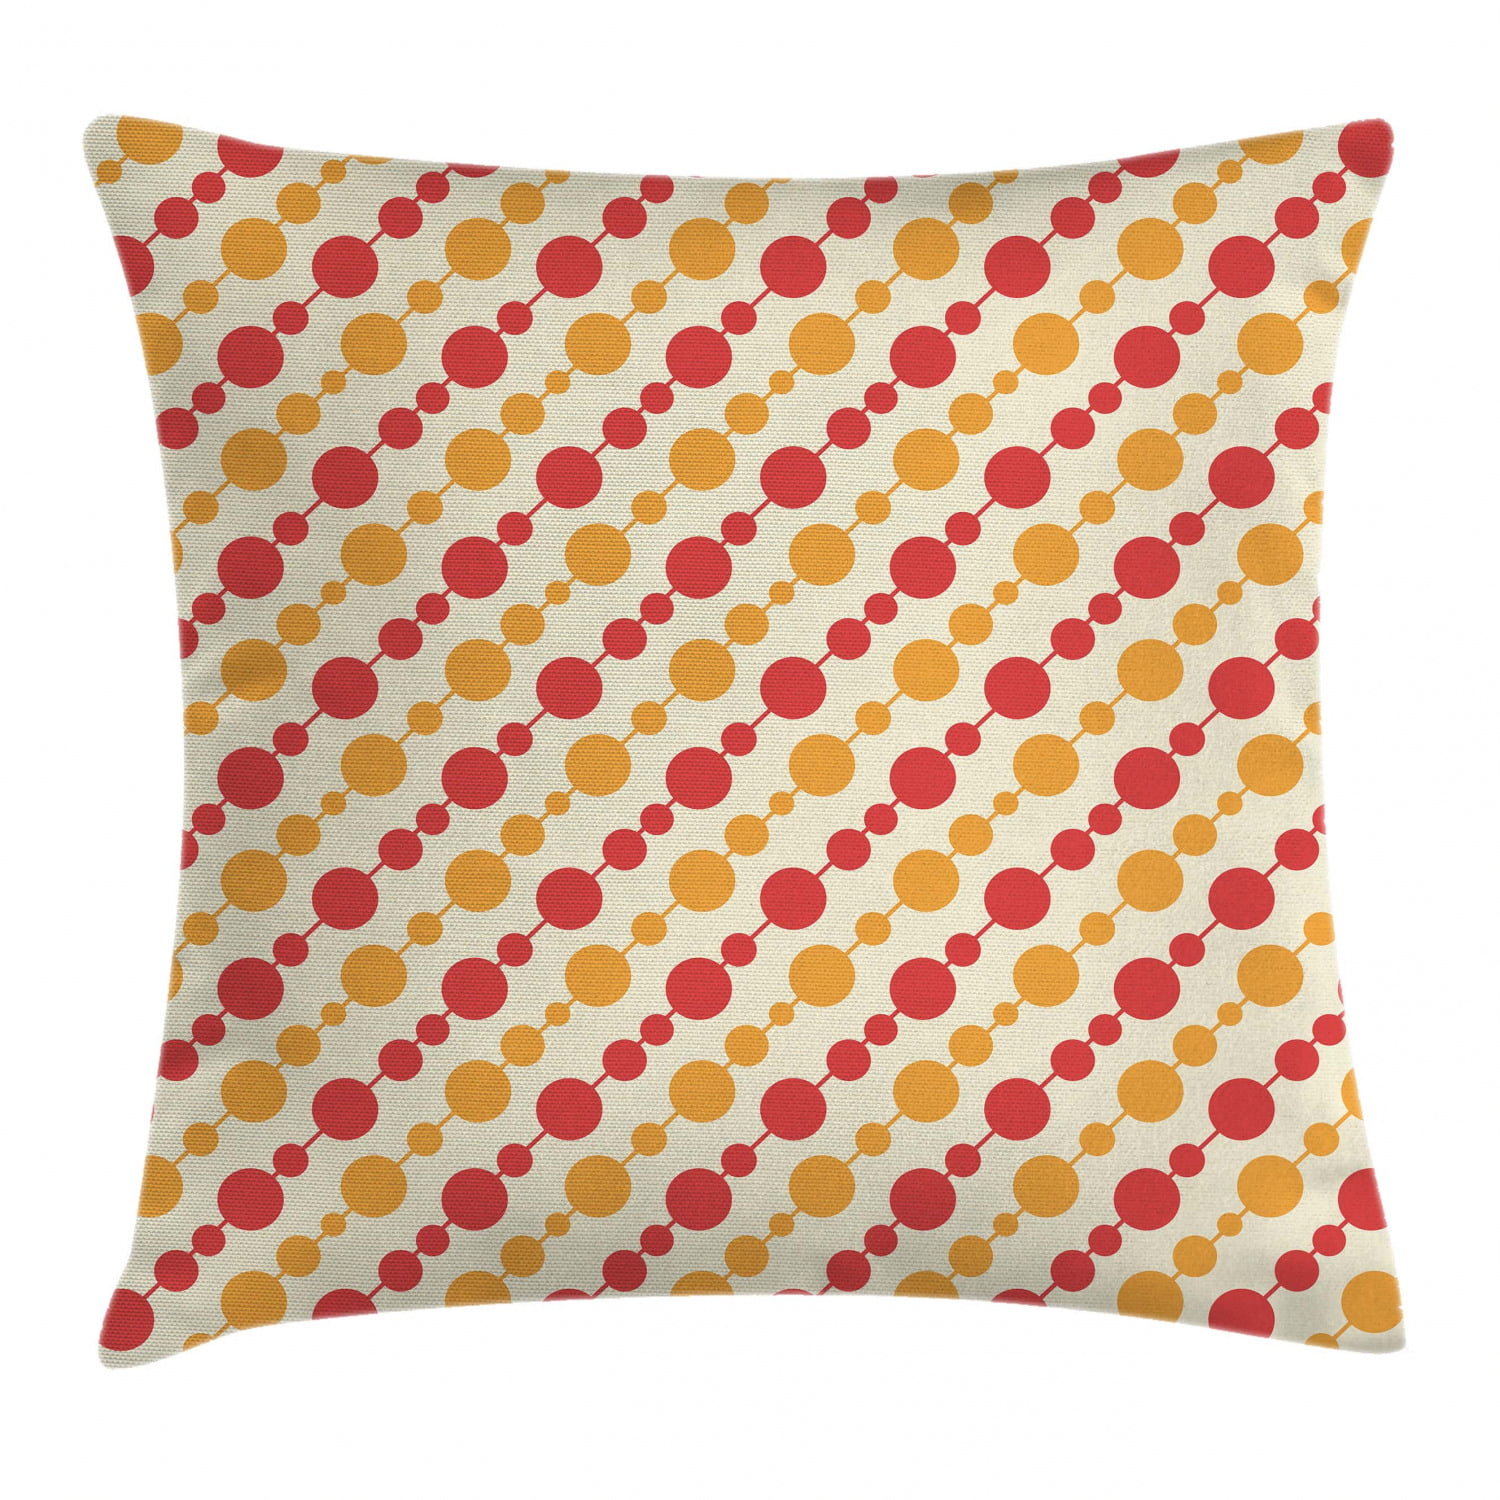 Kids Throw Pillow Cushion Cover Diagonal Chain Pattern With Big And Small Dots On Lines In Shabby Colors Decorative Square Accent Pillow Case 20 X 20 Inches Scarlet Marigold Cream By Ambesonne